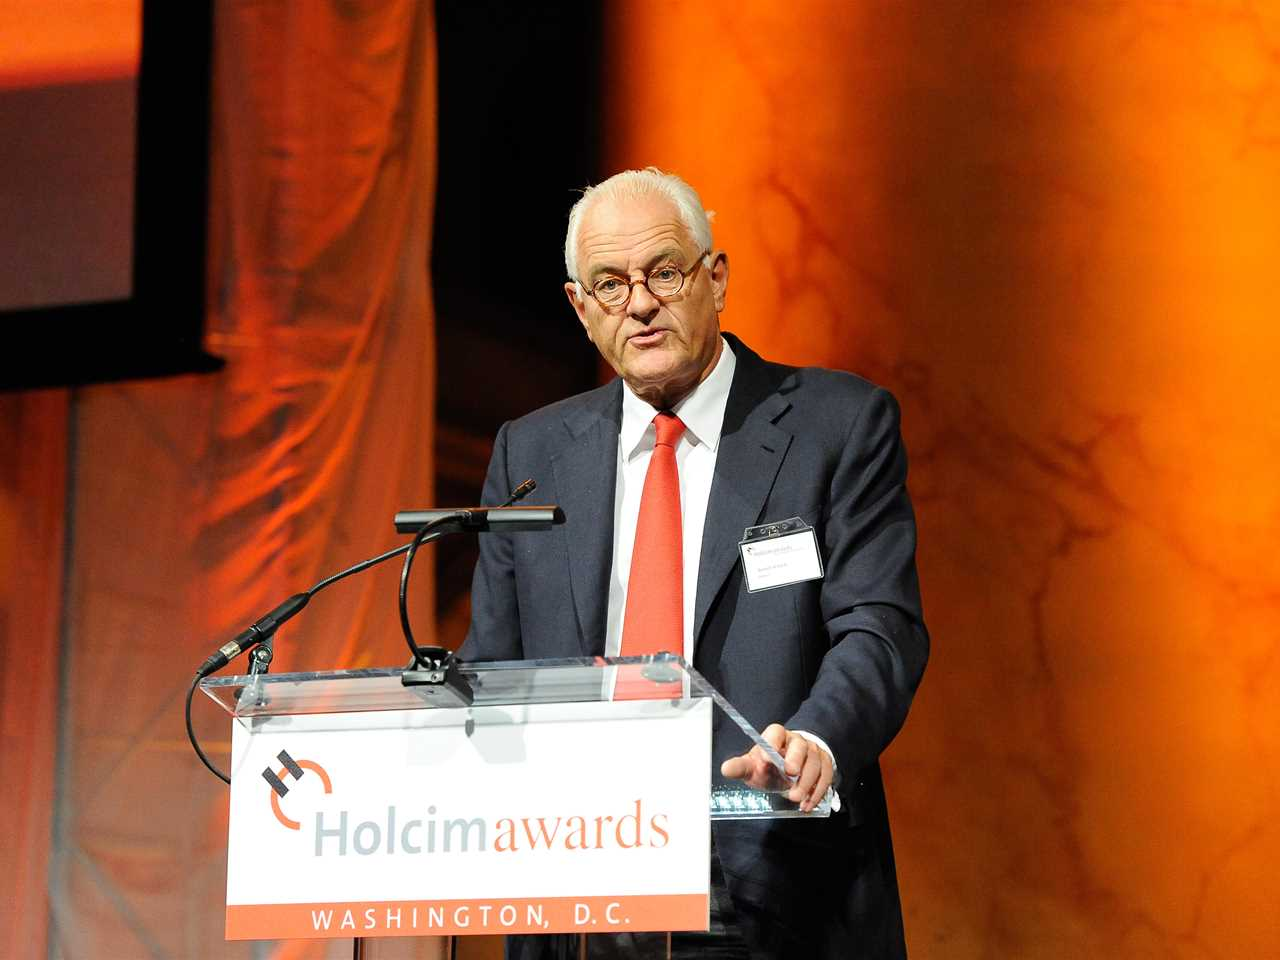 Benoît-Henri Koch, Member of the Executive Committee of Holcim Ltd, Switzerland – welcome on …